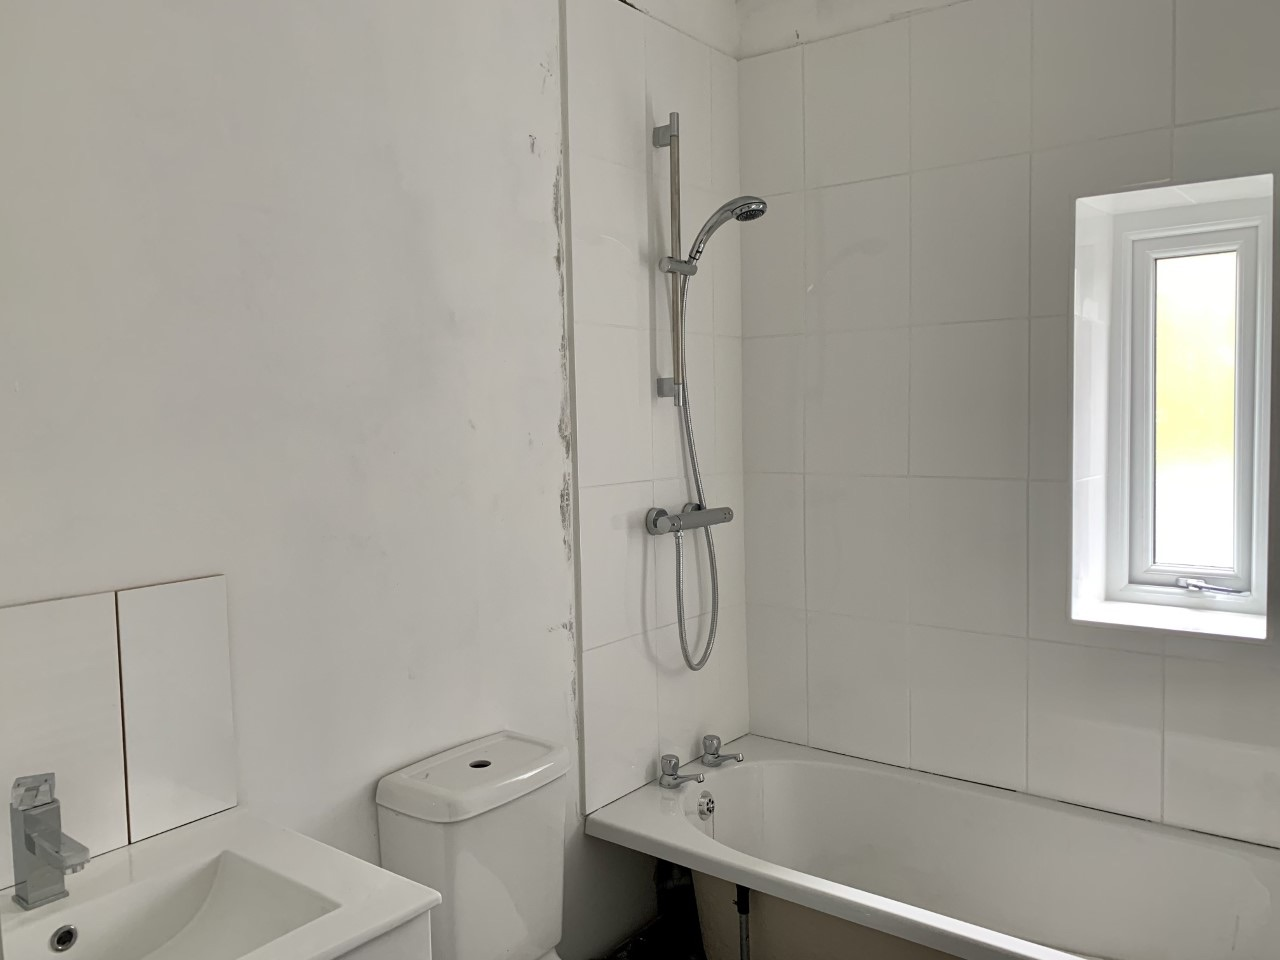 3 bedroom mid terraced house For Sale in Calderdale - Photograph 9.